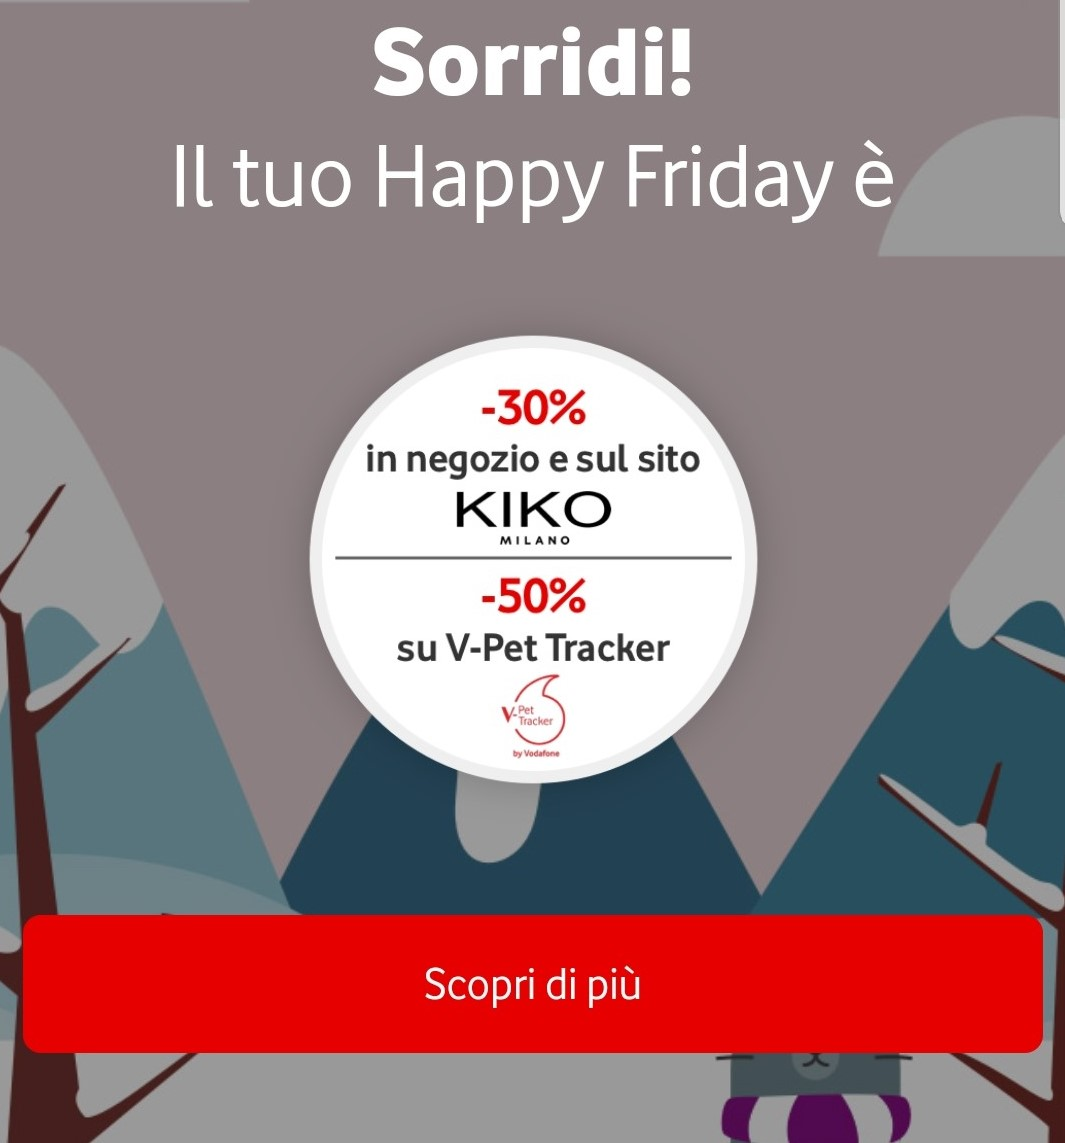 Sconto del 30% KIKO con Vodafone Happy